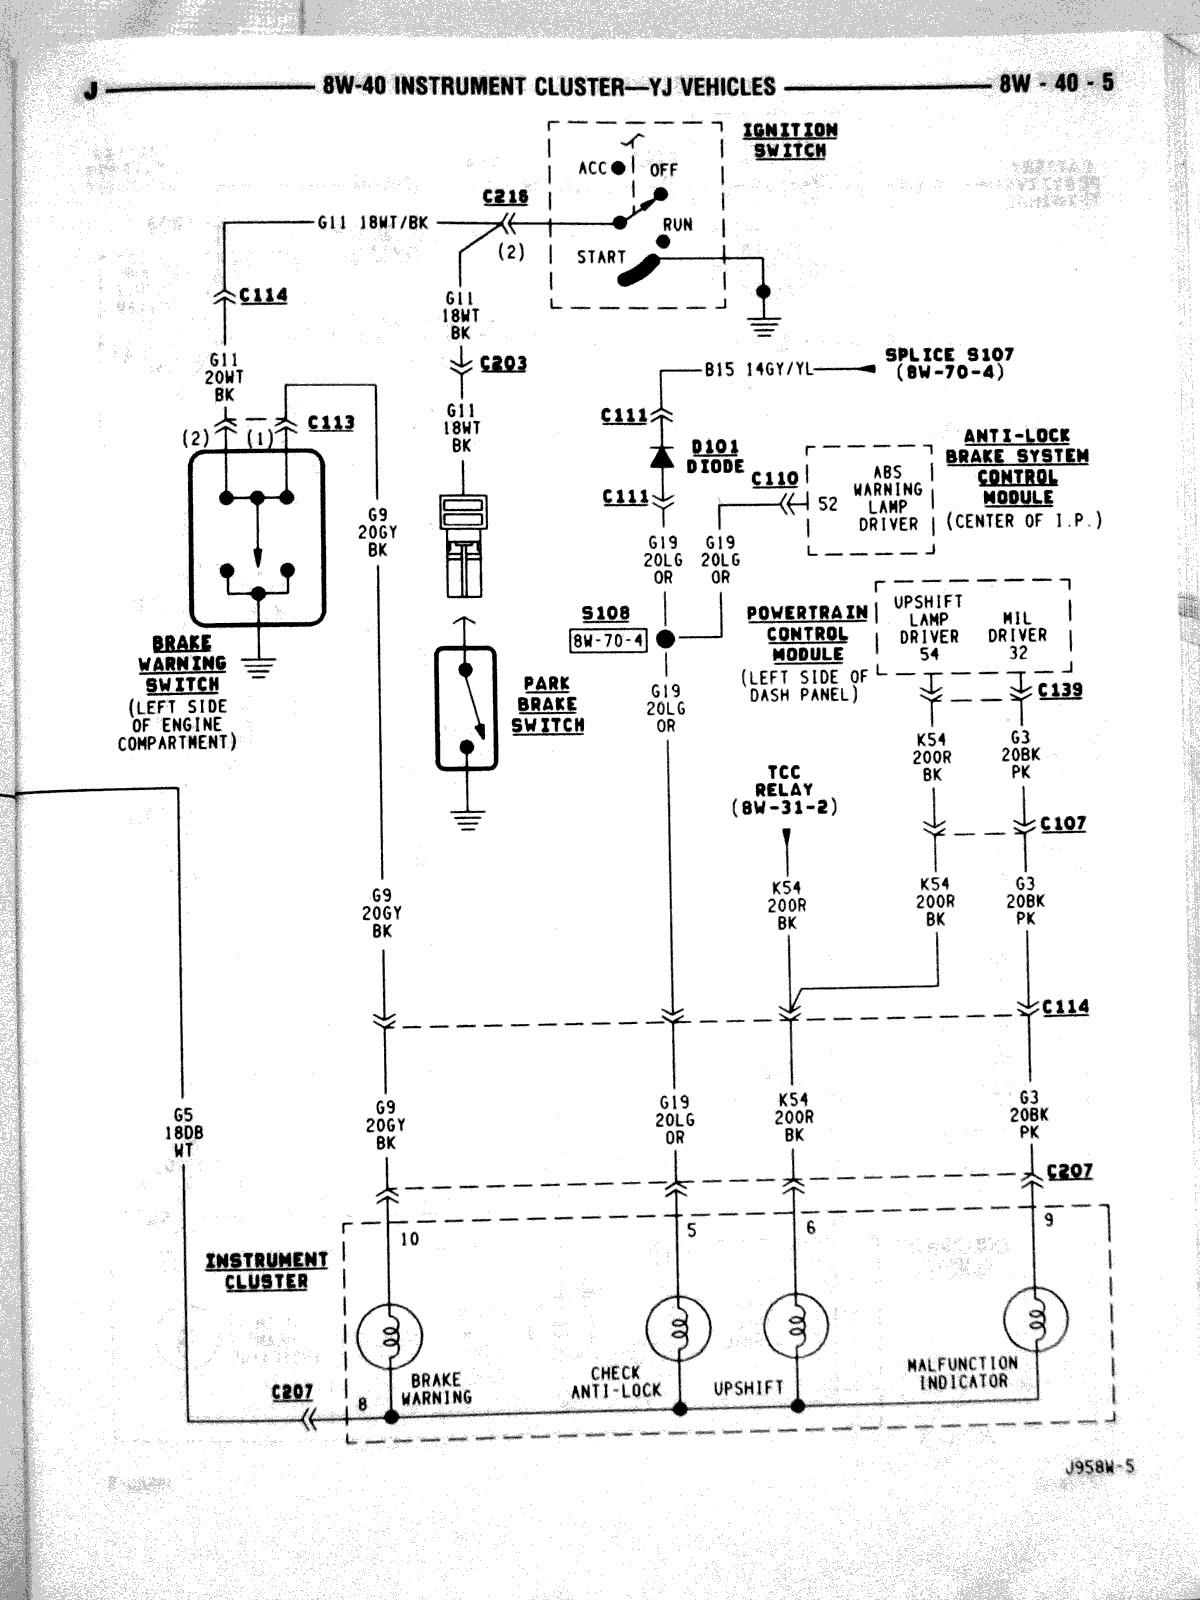 1994 Jeep Wrangler Headlight Wiring | Wiring Diagram Jeep Wrangler Headlight Wiring Diagram on jeep wrangler alternator wiring diagram, jeep wrangler headlight fuse, jeep headlight switch wiring diagram, jeep wrangler headlight switch,